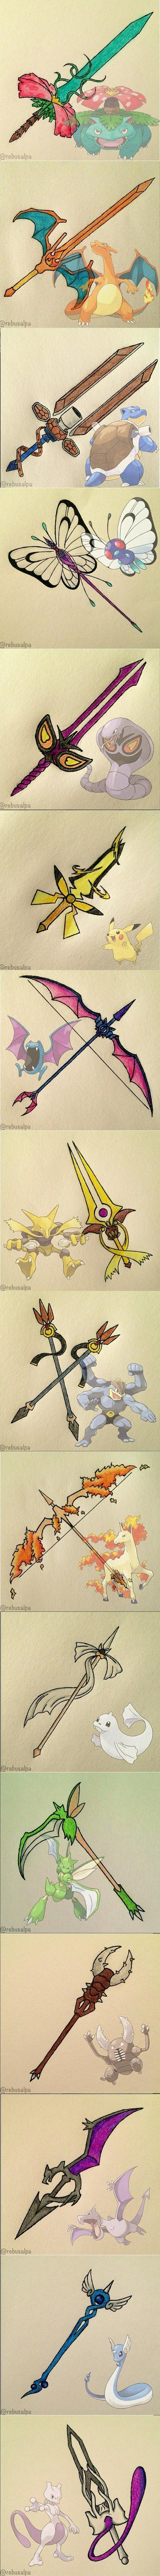 Pokémon Weapon Art. I have to say, I love Charizard's, Blastoise's, Rapidash's, and Dratini's weapons!